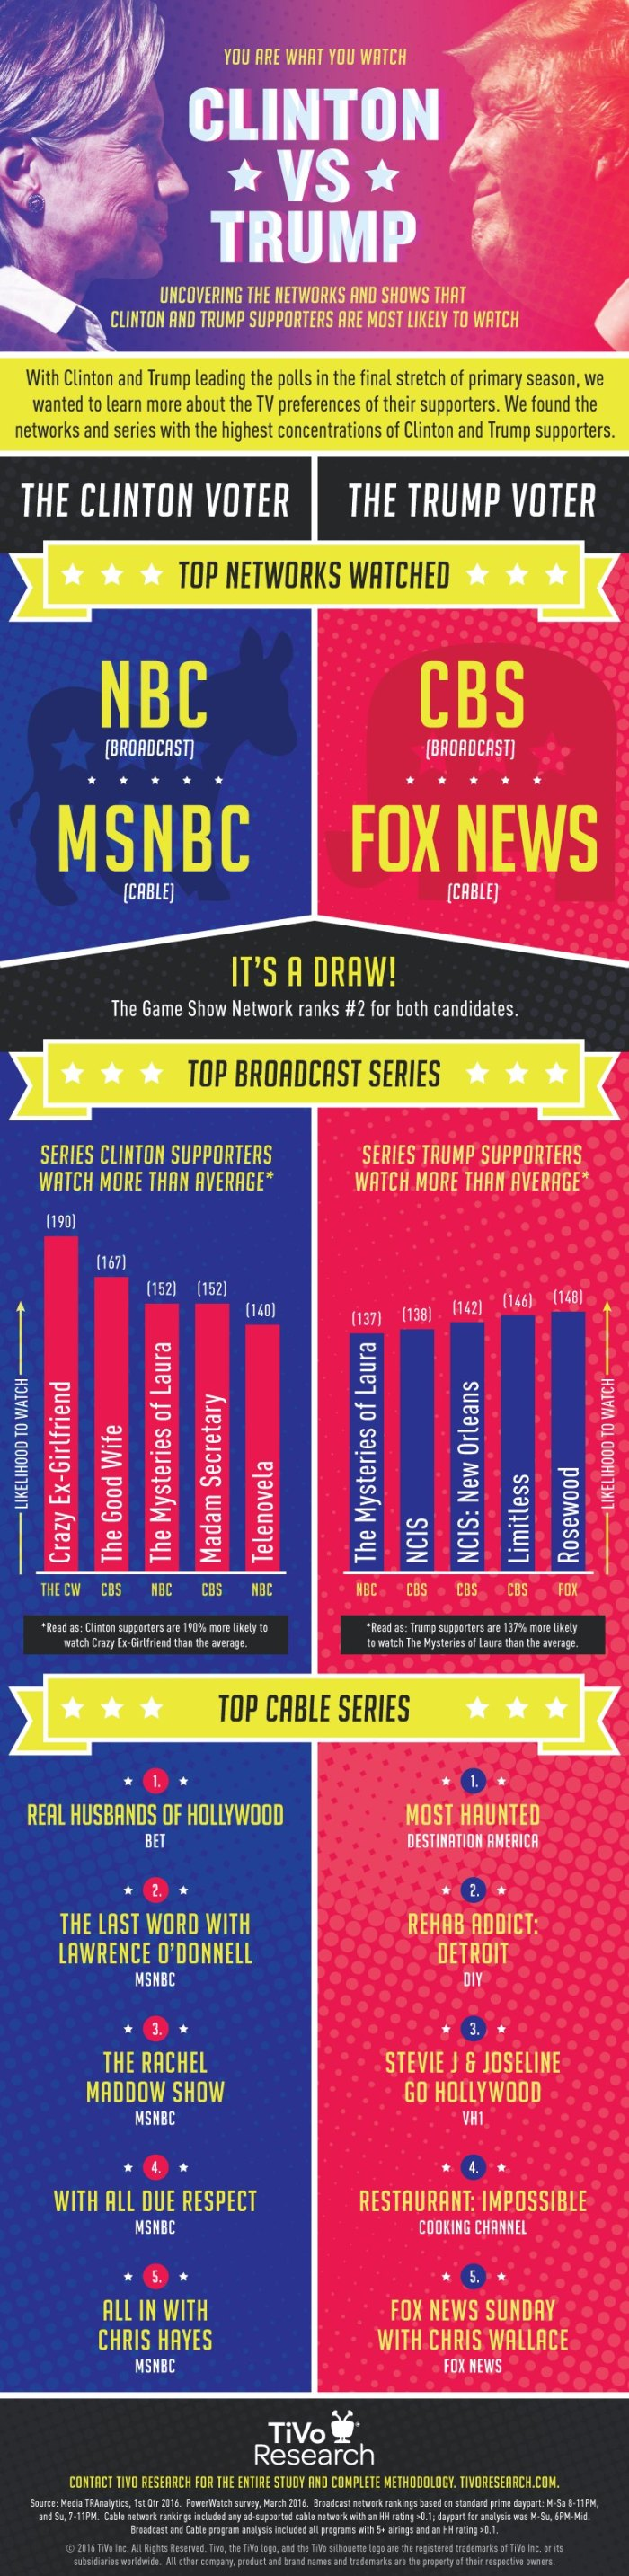 TiVo-Research_ClintonVSTrump_Infographic-Press[1]